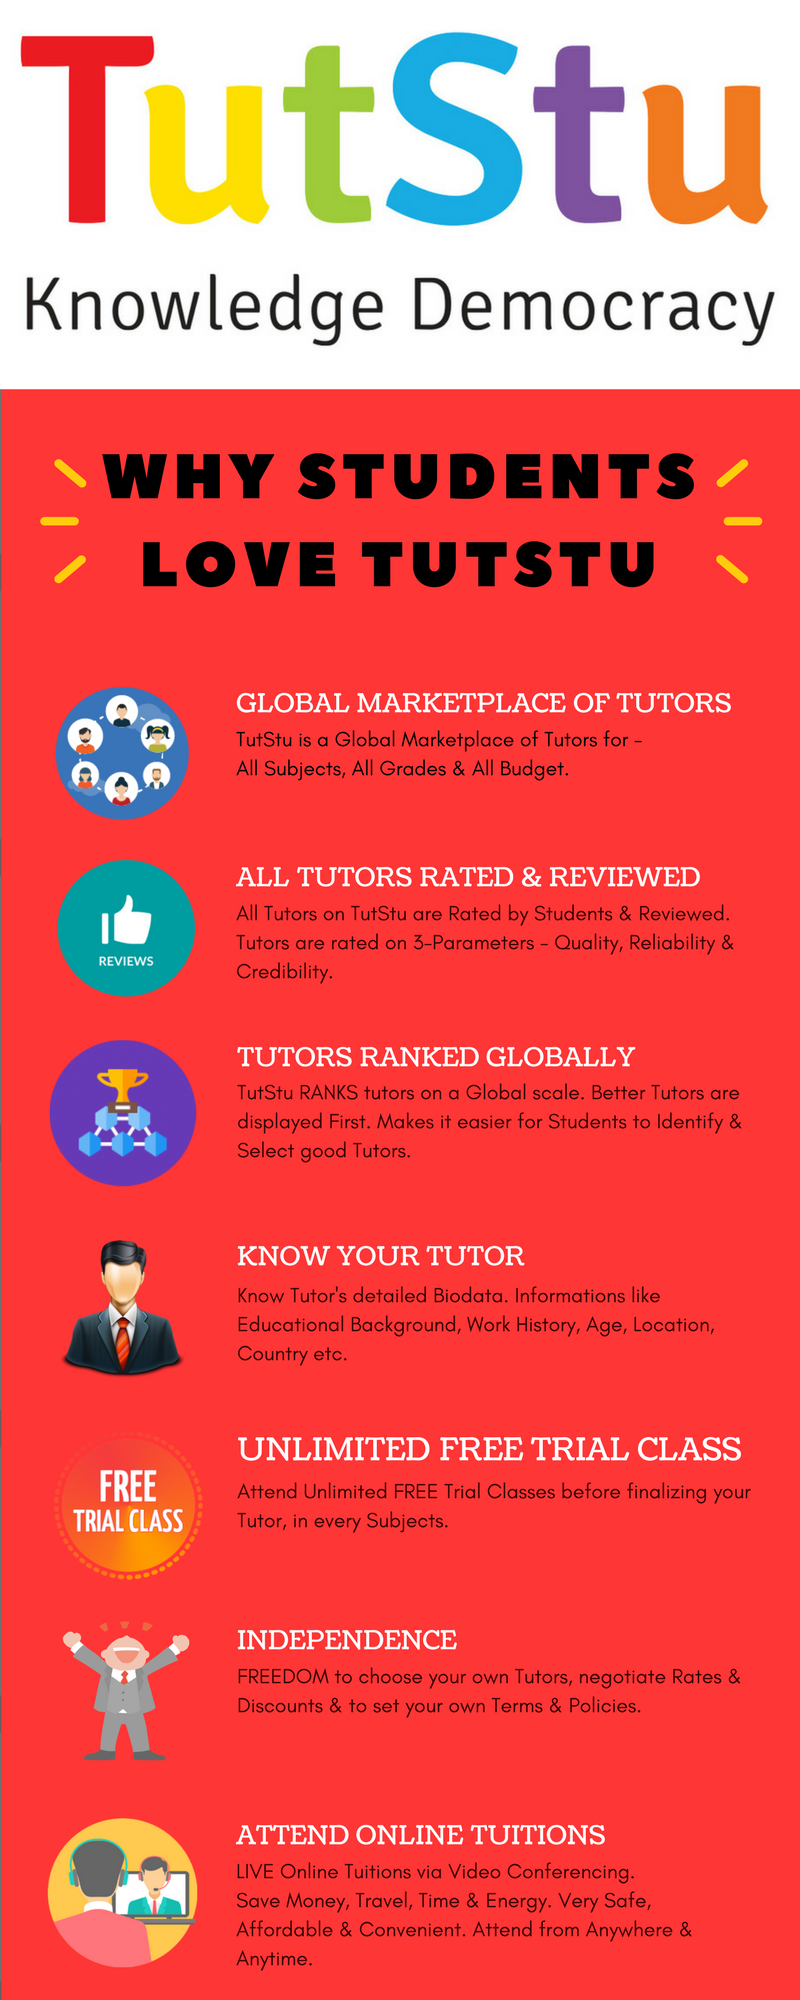 At tutstu its diy do it yourself search for online tutors in how diy online tutoring works for students how to find select best rated tutors schedule online tutoring sessions get tutoring online make payments to solutioingenieria